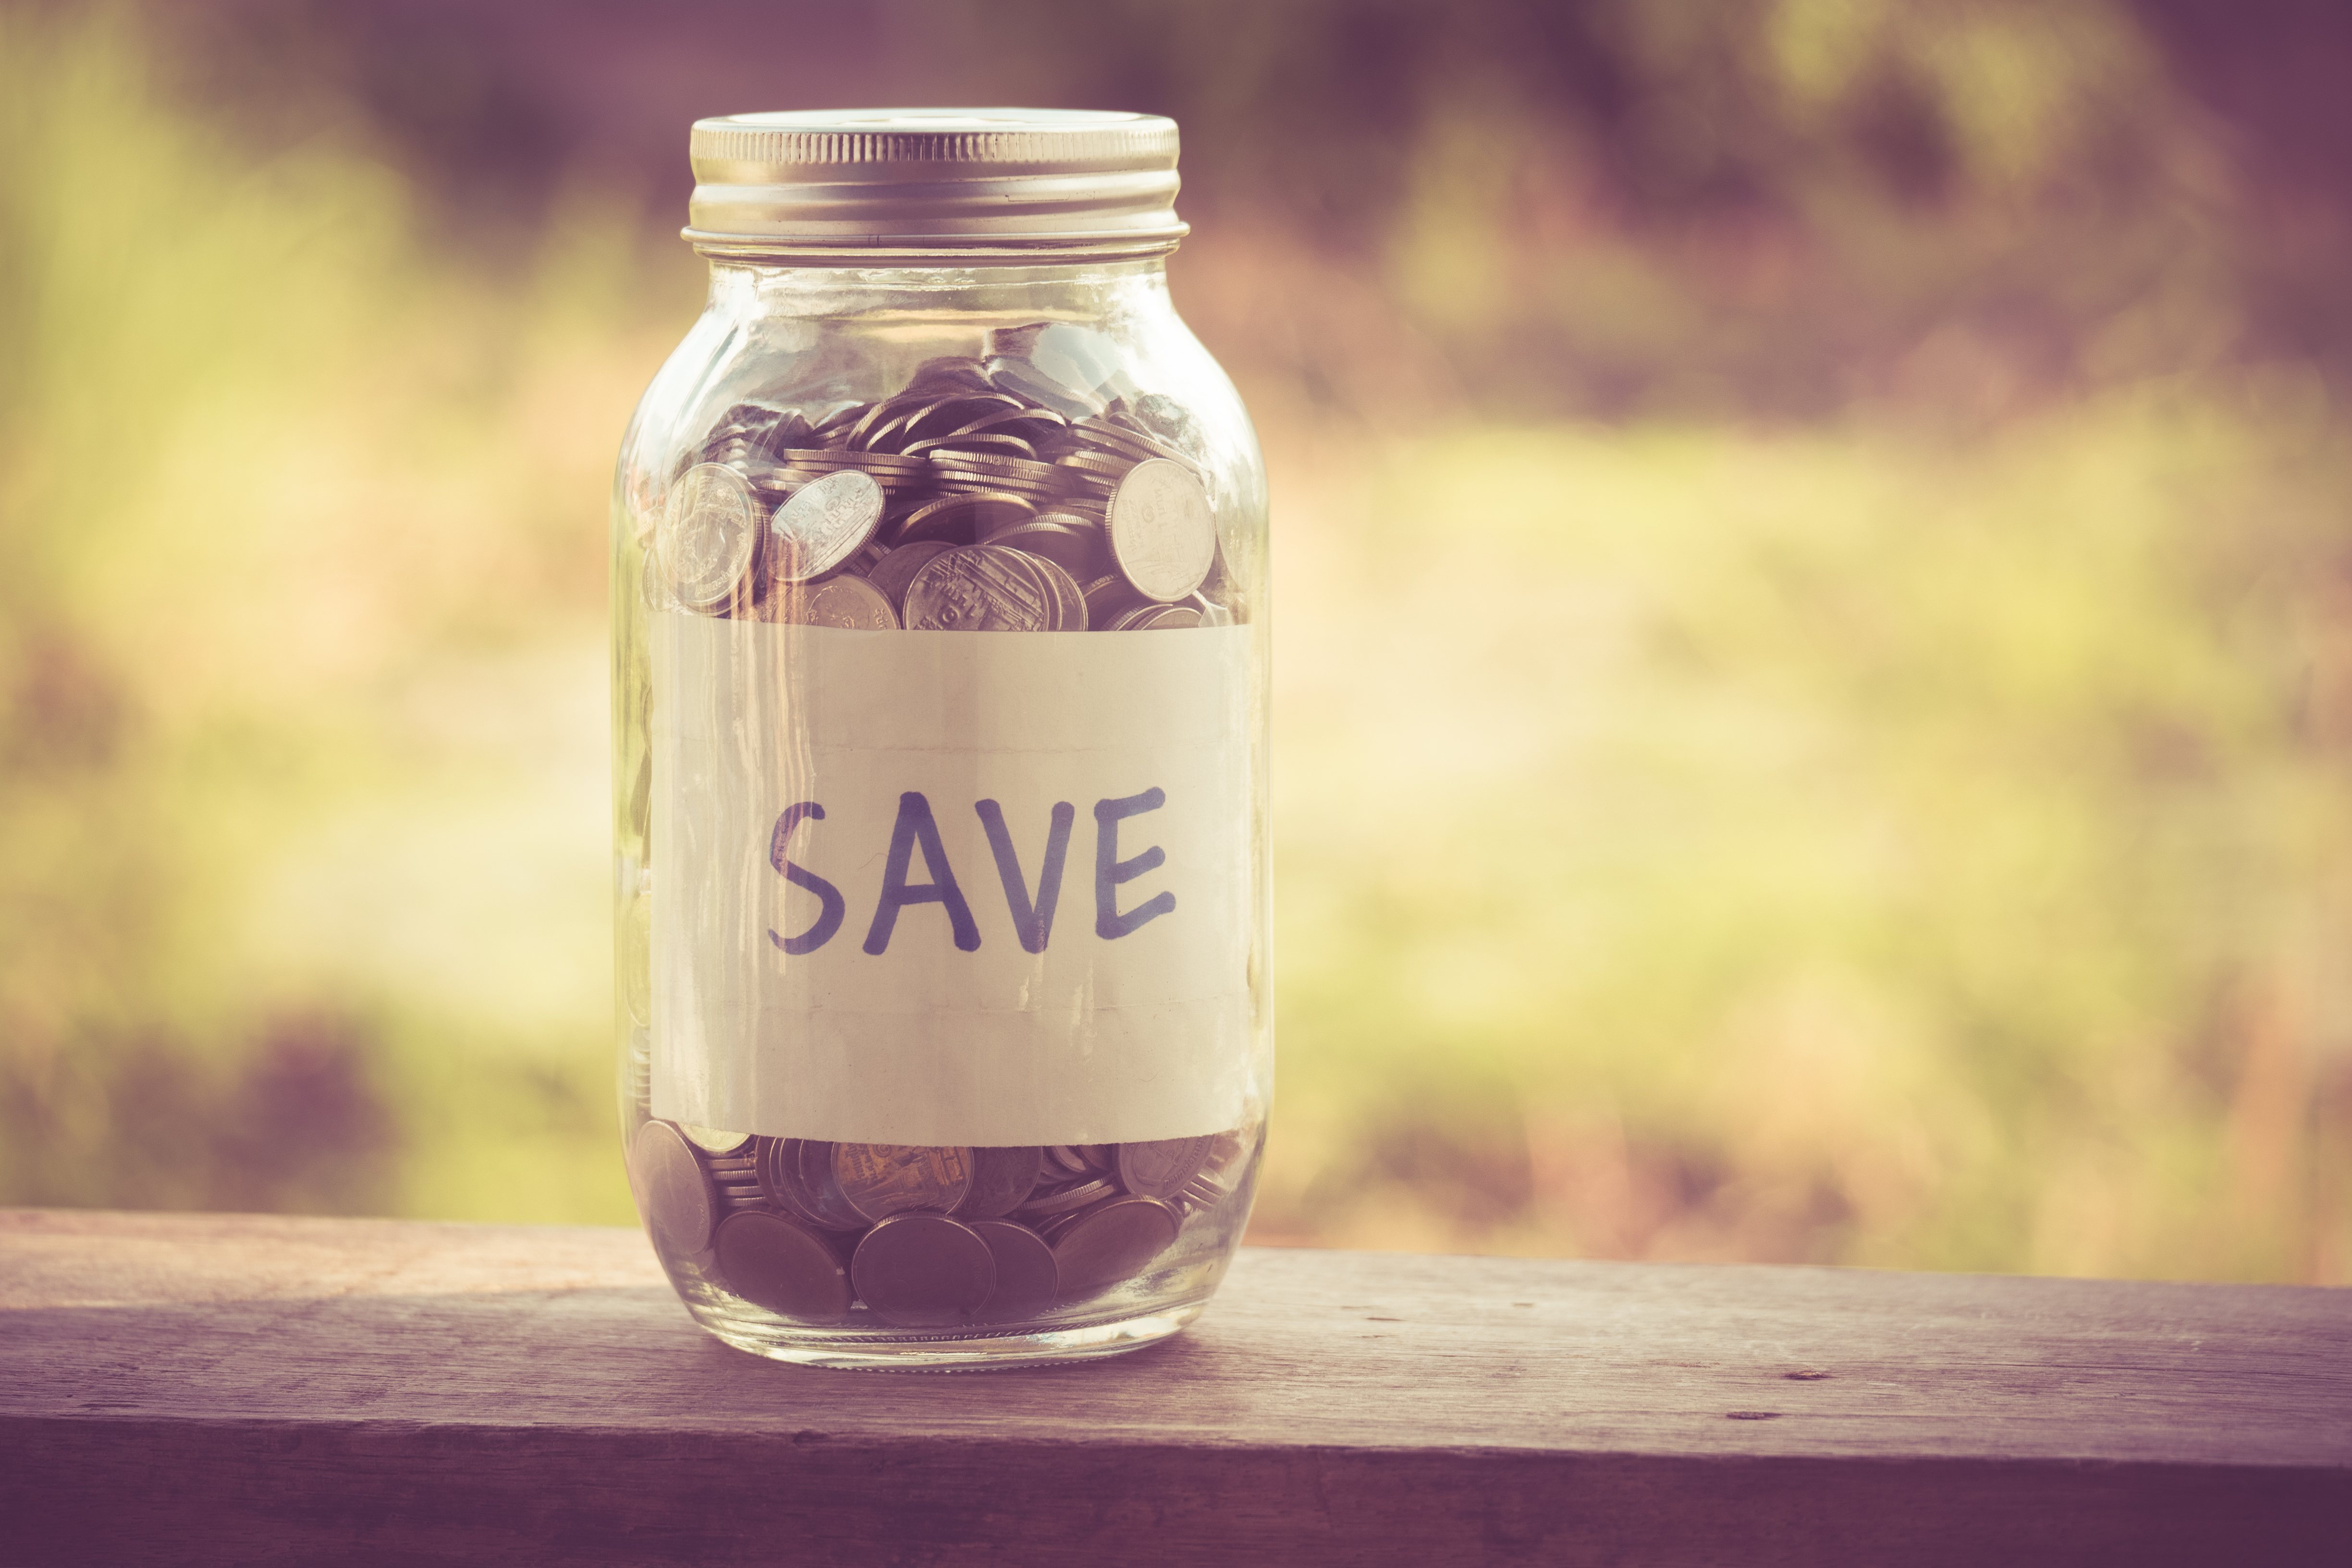 Top 7 Reasons to Save Your Money - The Balance